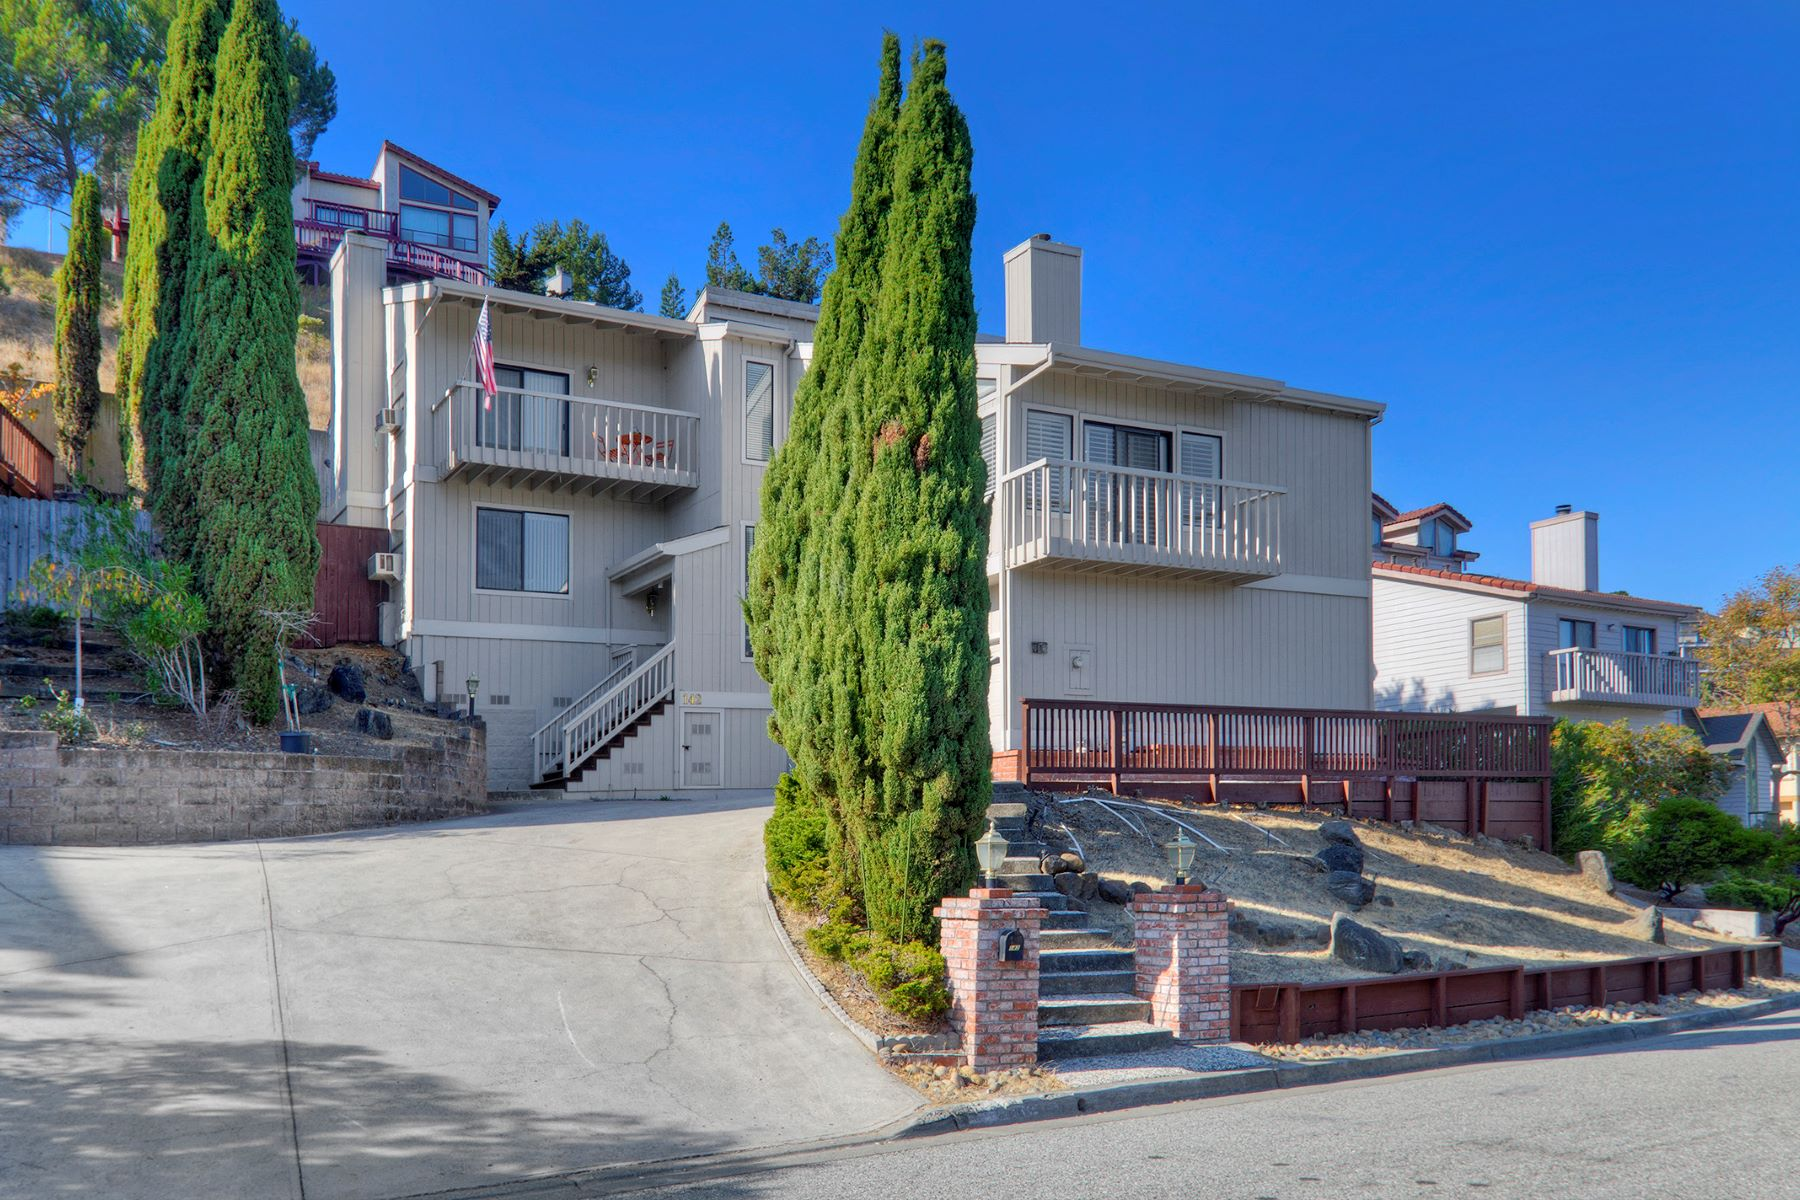 Single Family Homes for Sale at Warm, Traditional Home Tucked Away in the Hills 142 Exeter Avenue San Carlos, California 94070 United States